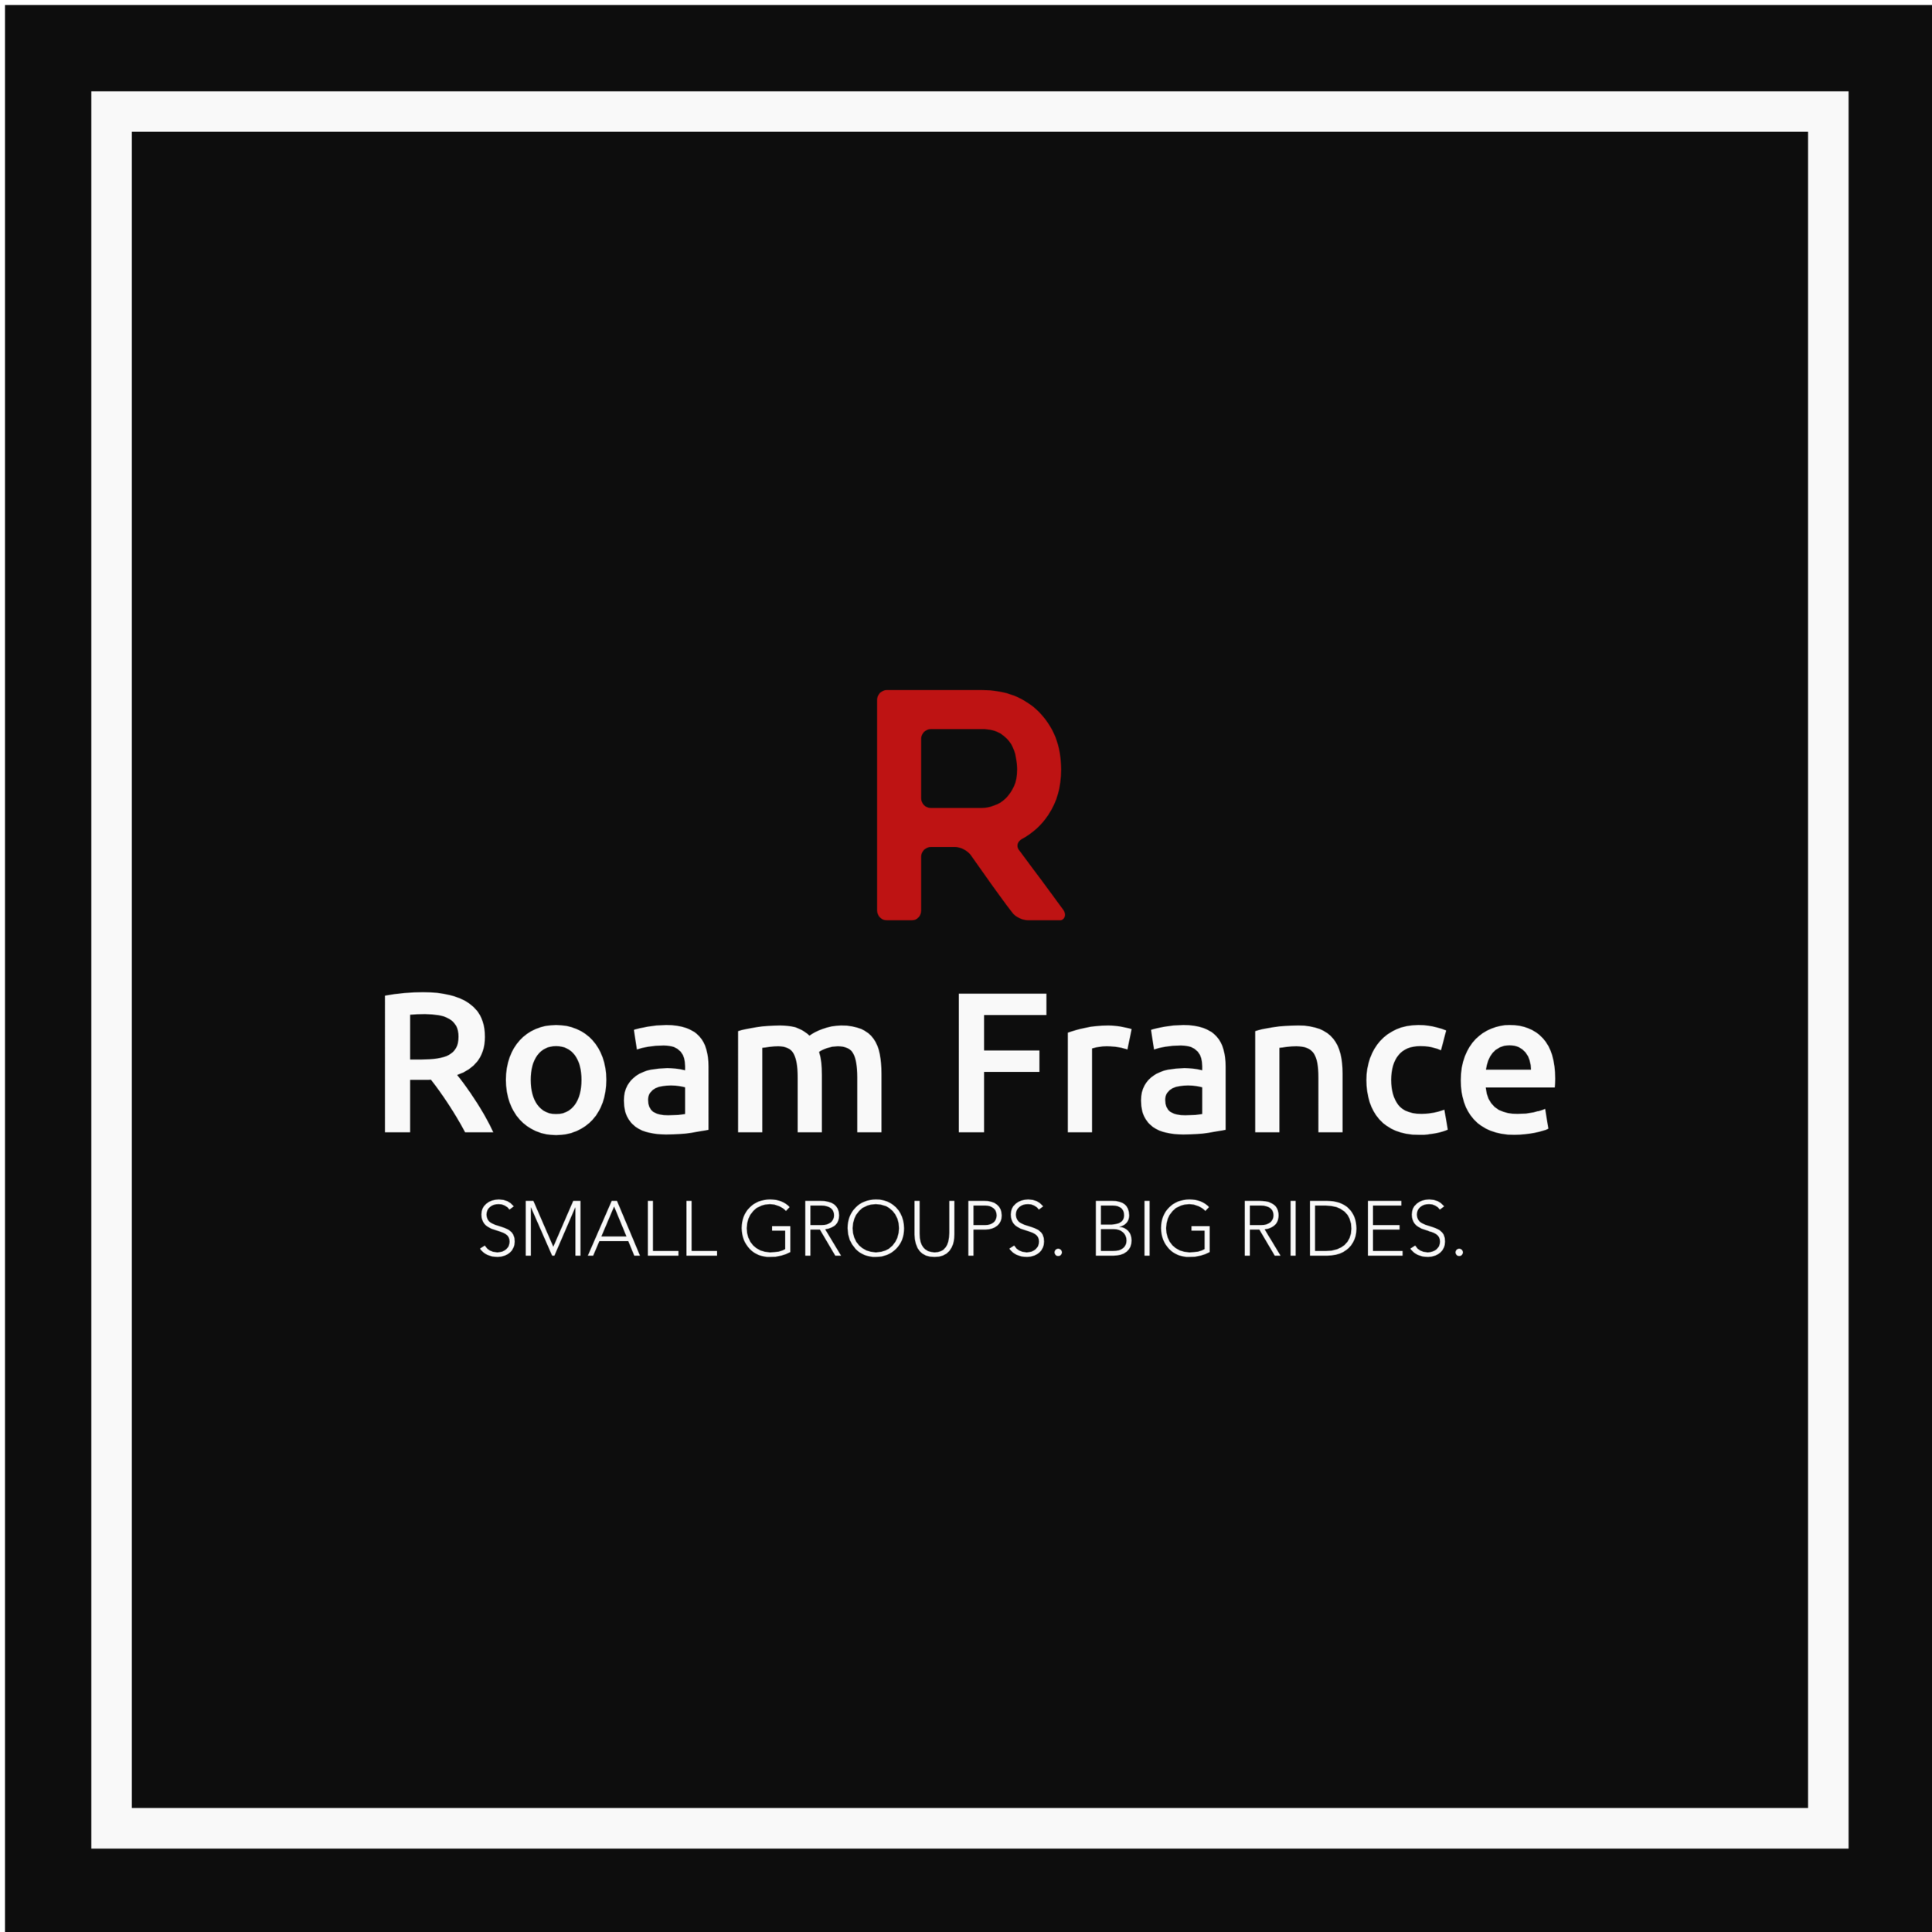 Custom cycling tours in the South of France. Small Groups, Big Rides. Small Roads, Big Fun.